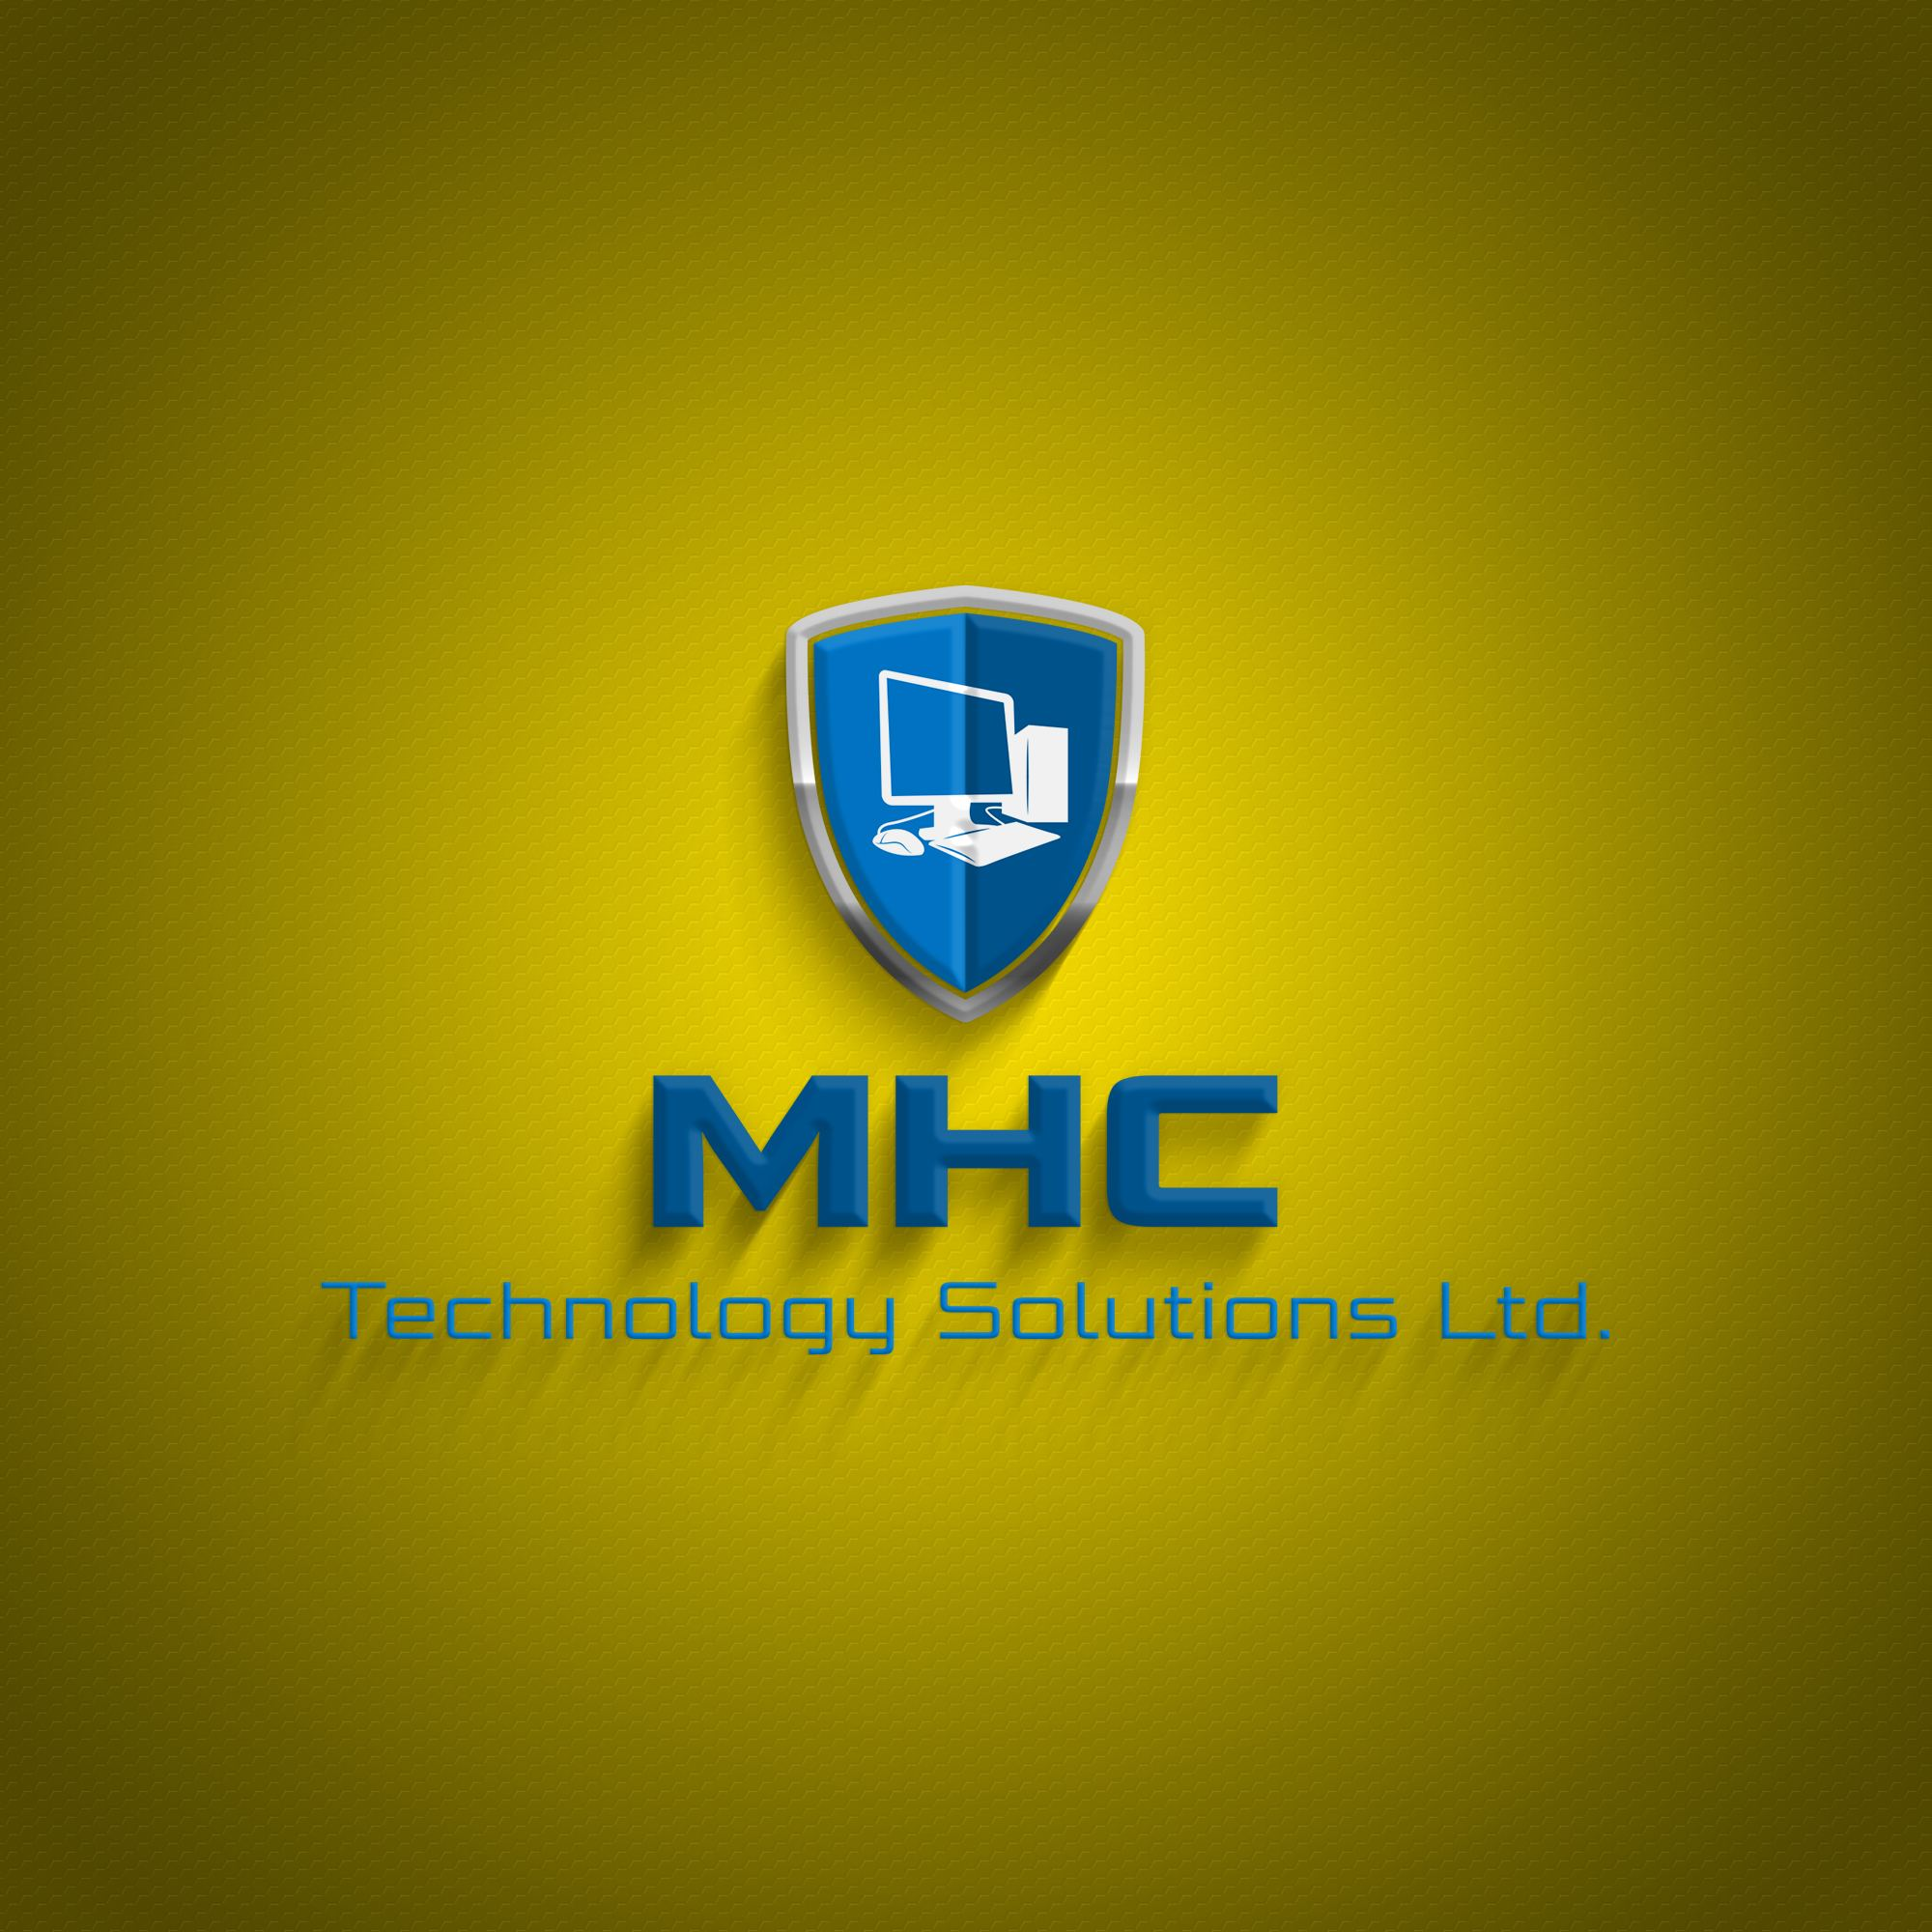 MHC Technology Solutions Ltd